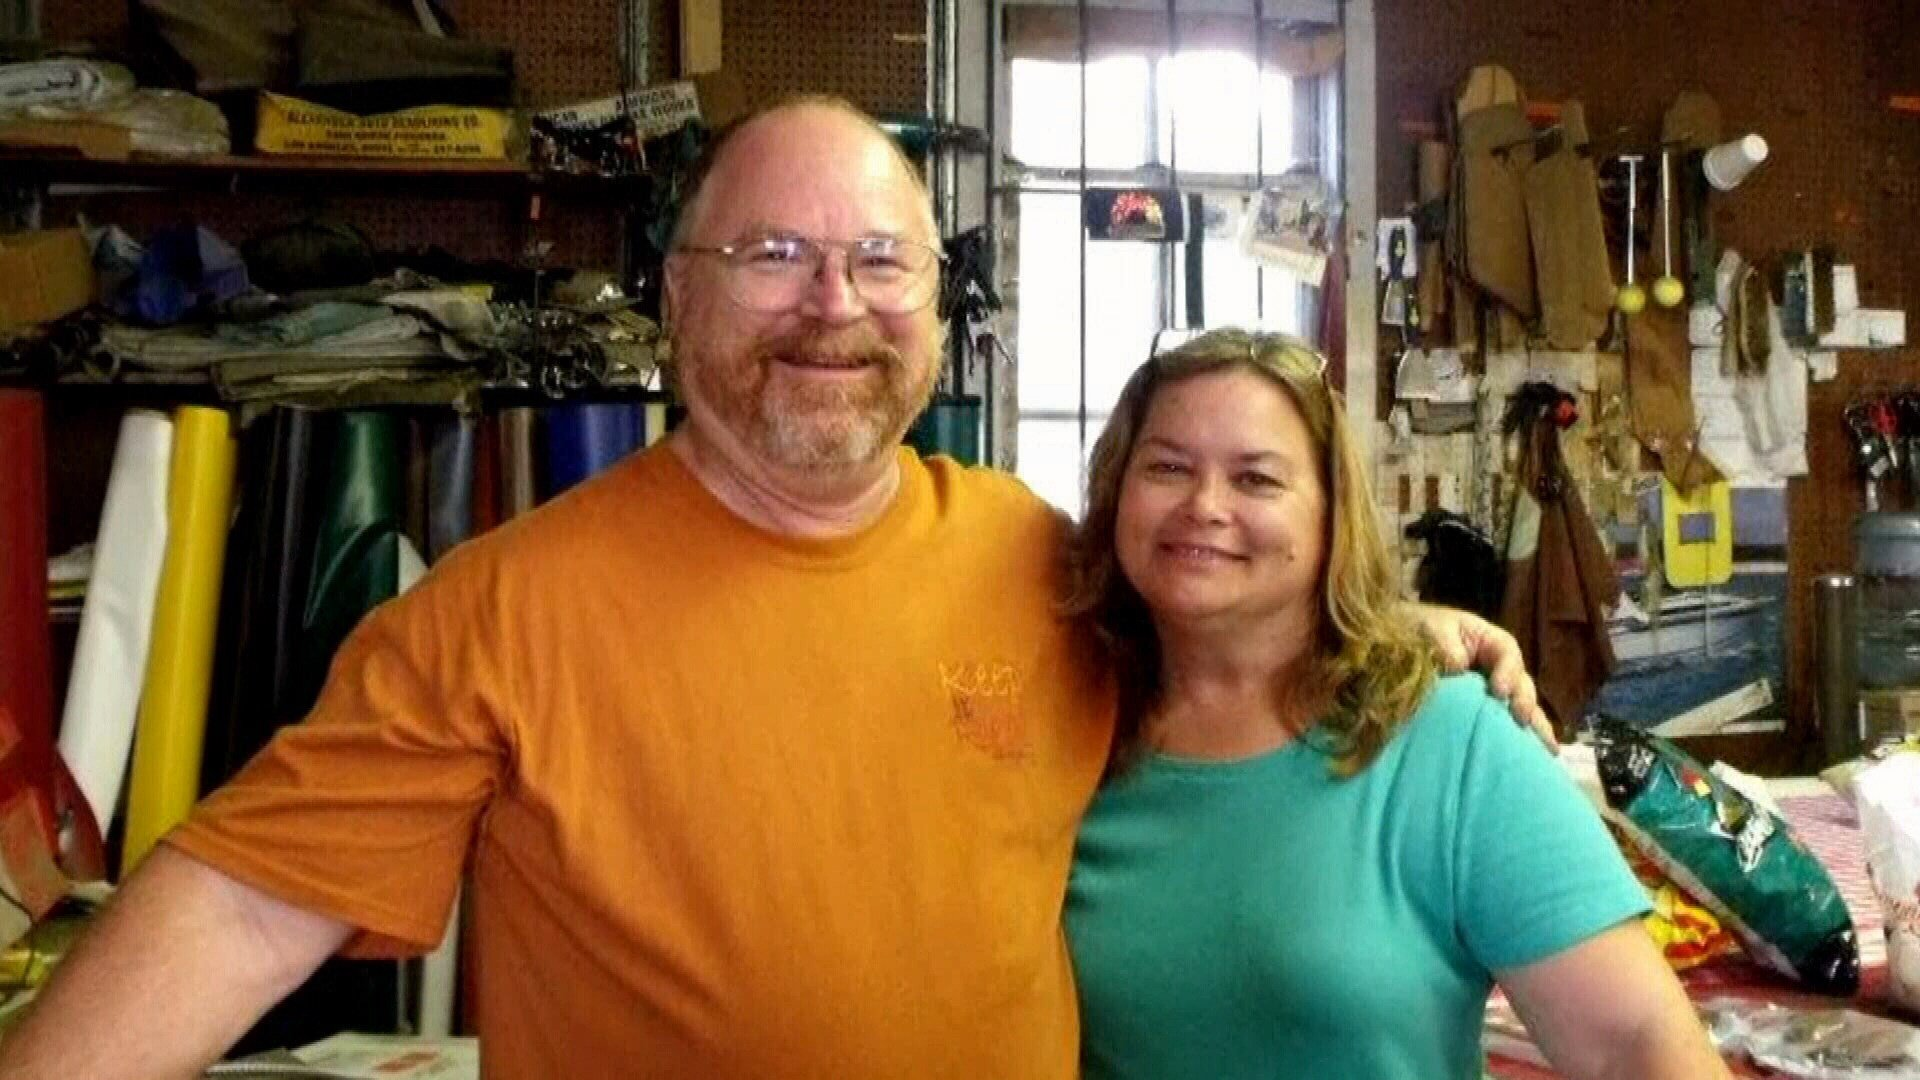 Bryan and Karla Holcombe worked with local youth in the churches and ran summer camps.